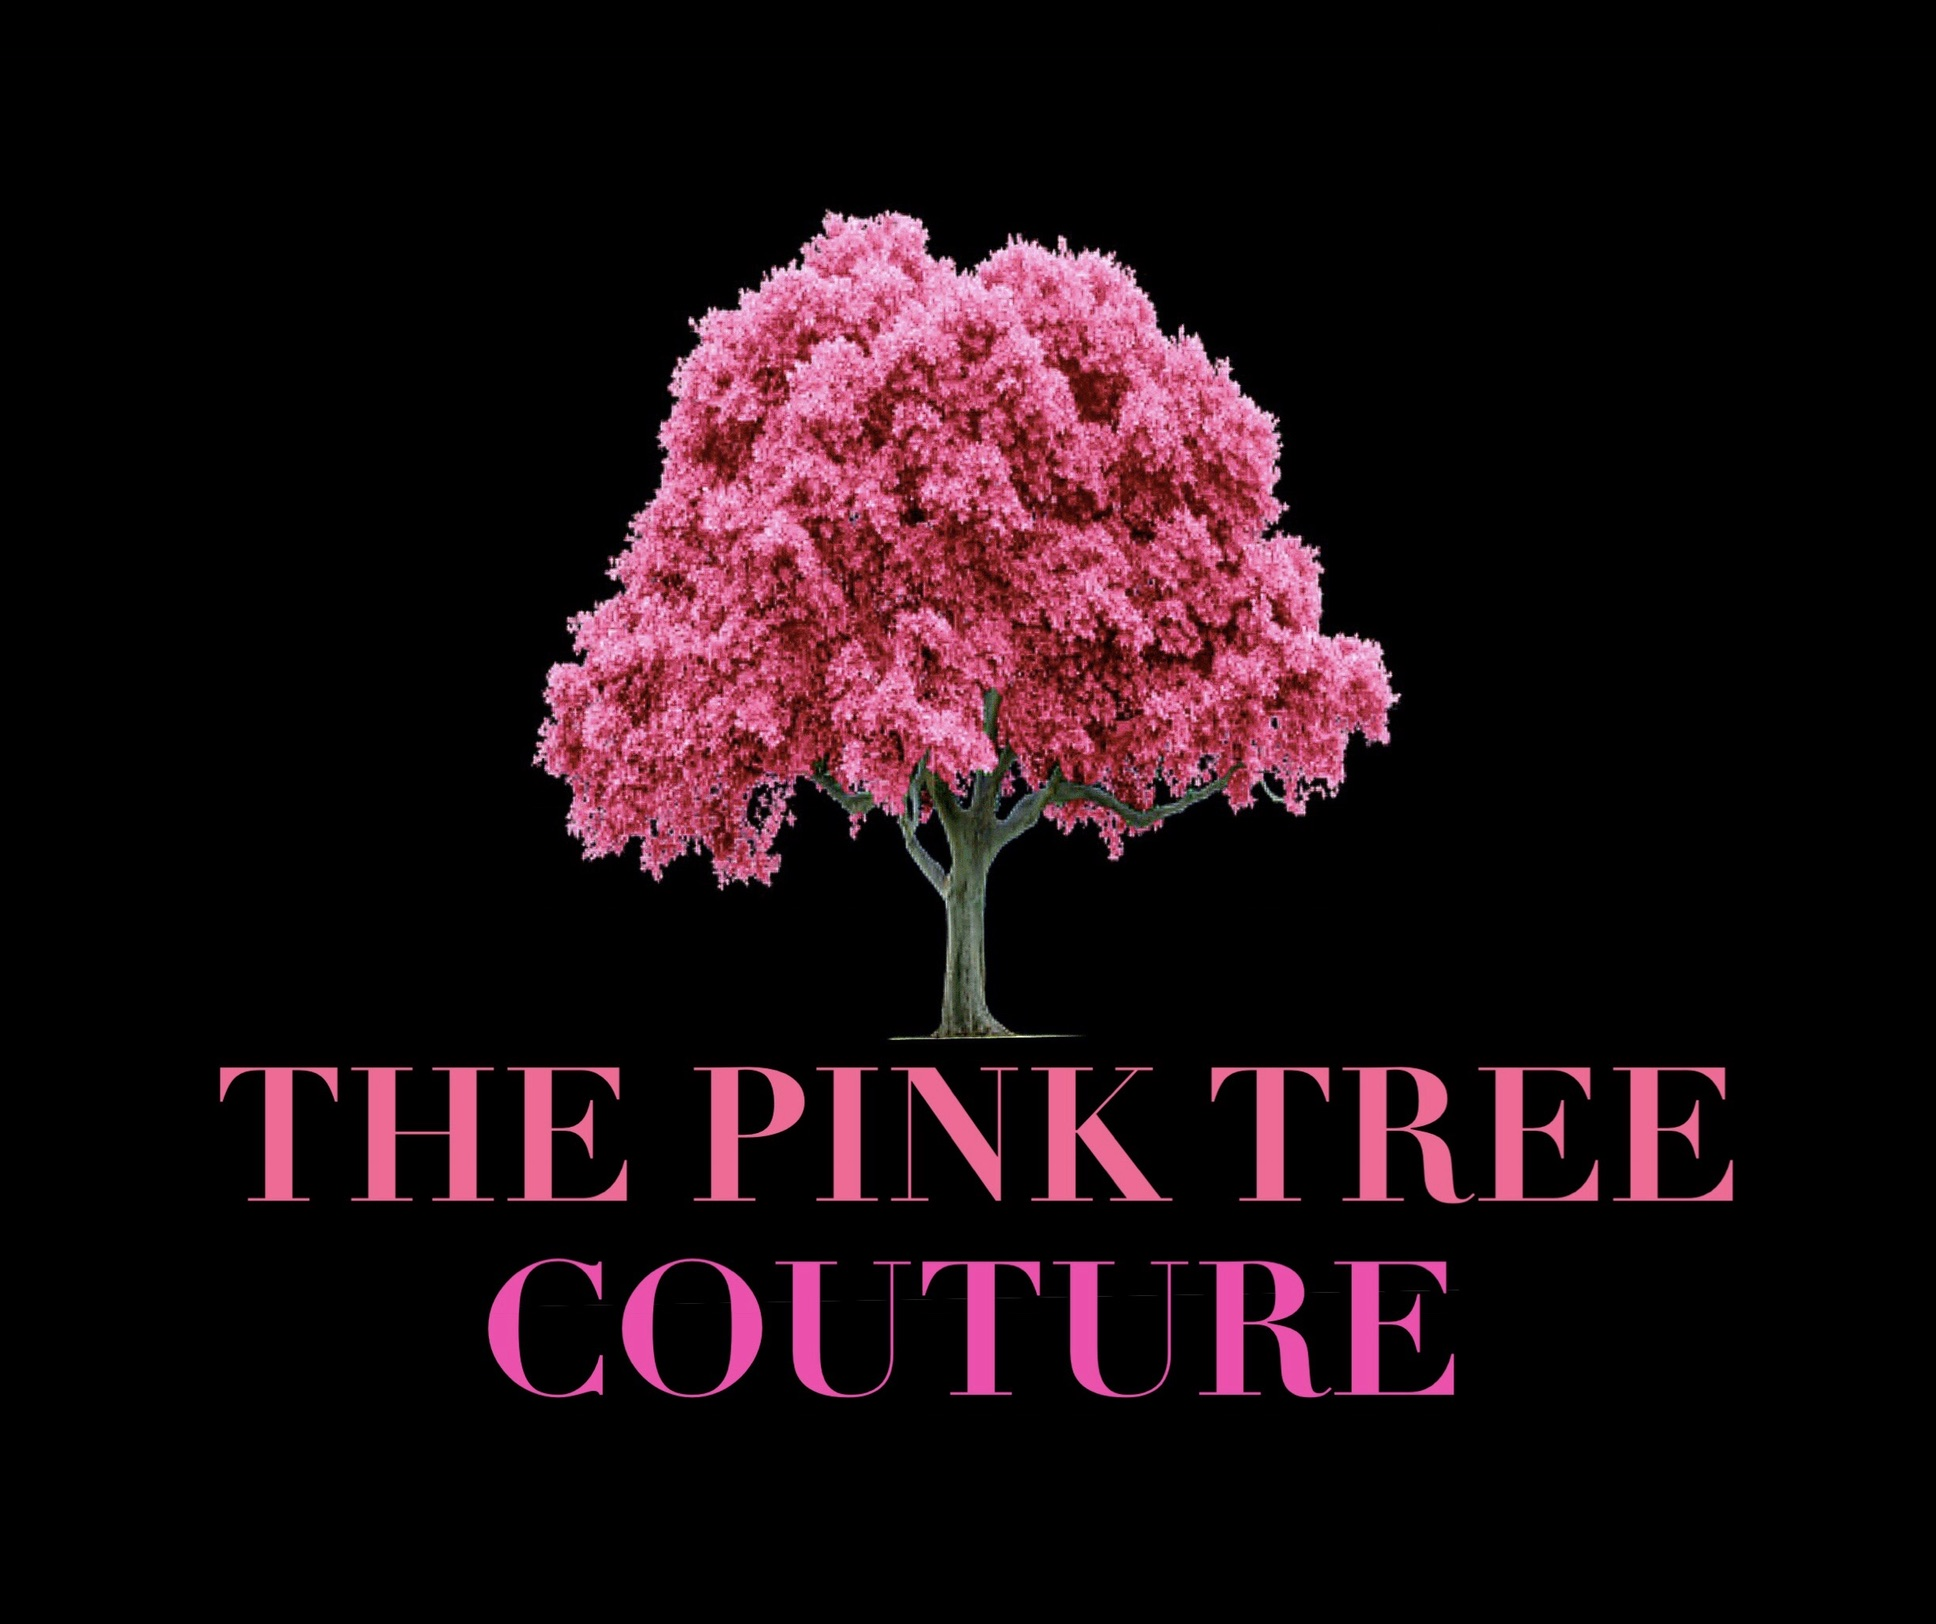 The Pink Tree Couture